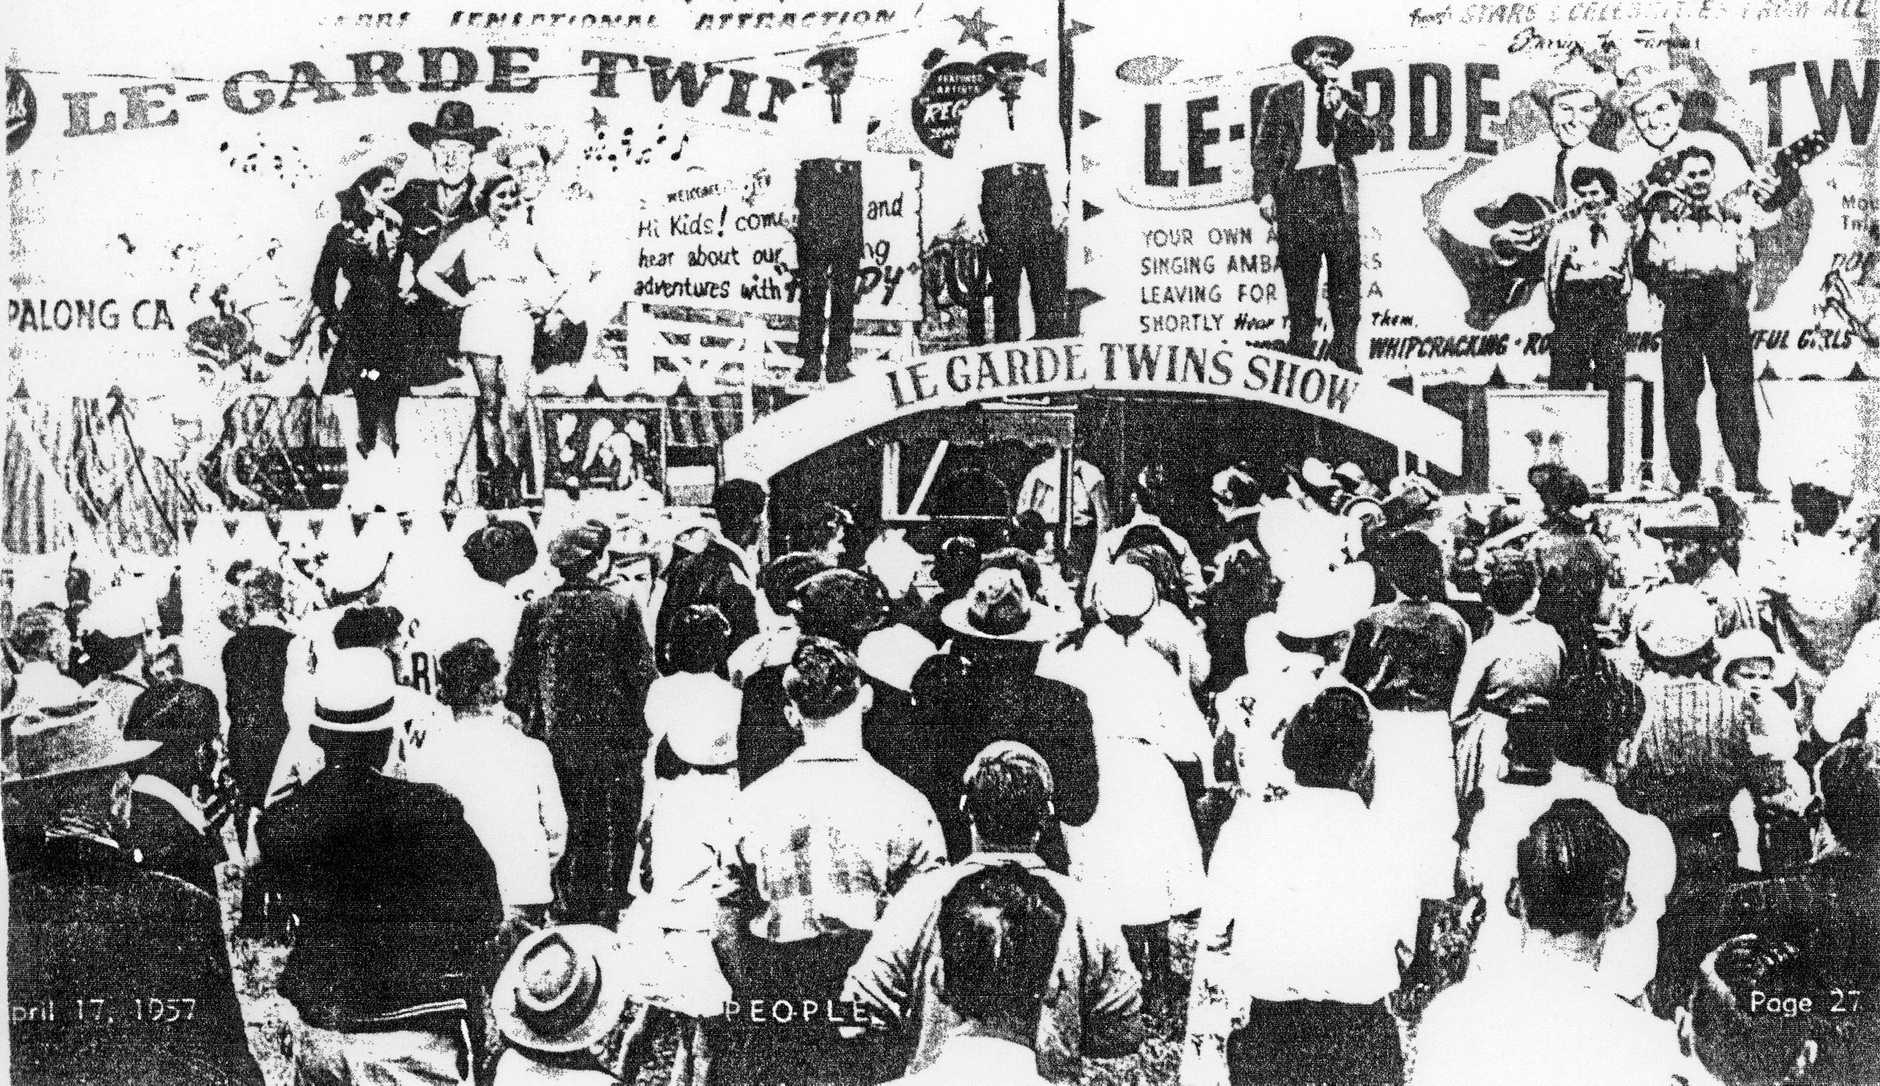 Tom and Ted LeGarde found fame in Australia in the 1950s and joined a travelling rodeo singing and riding at country shows.